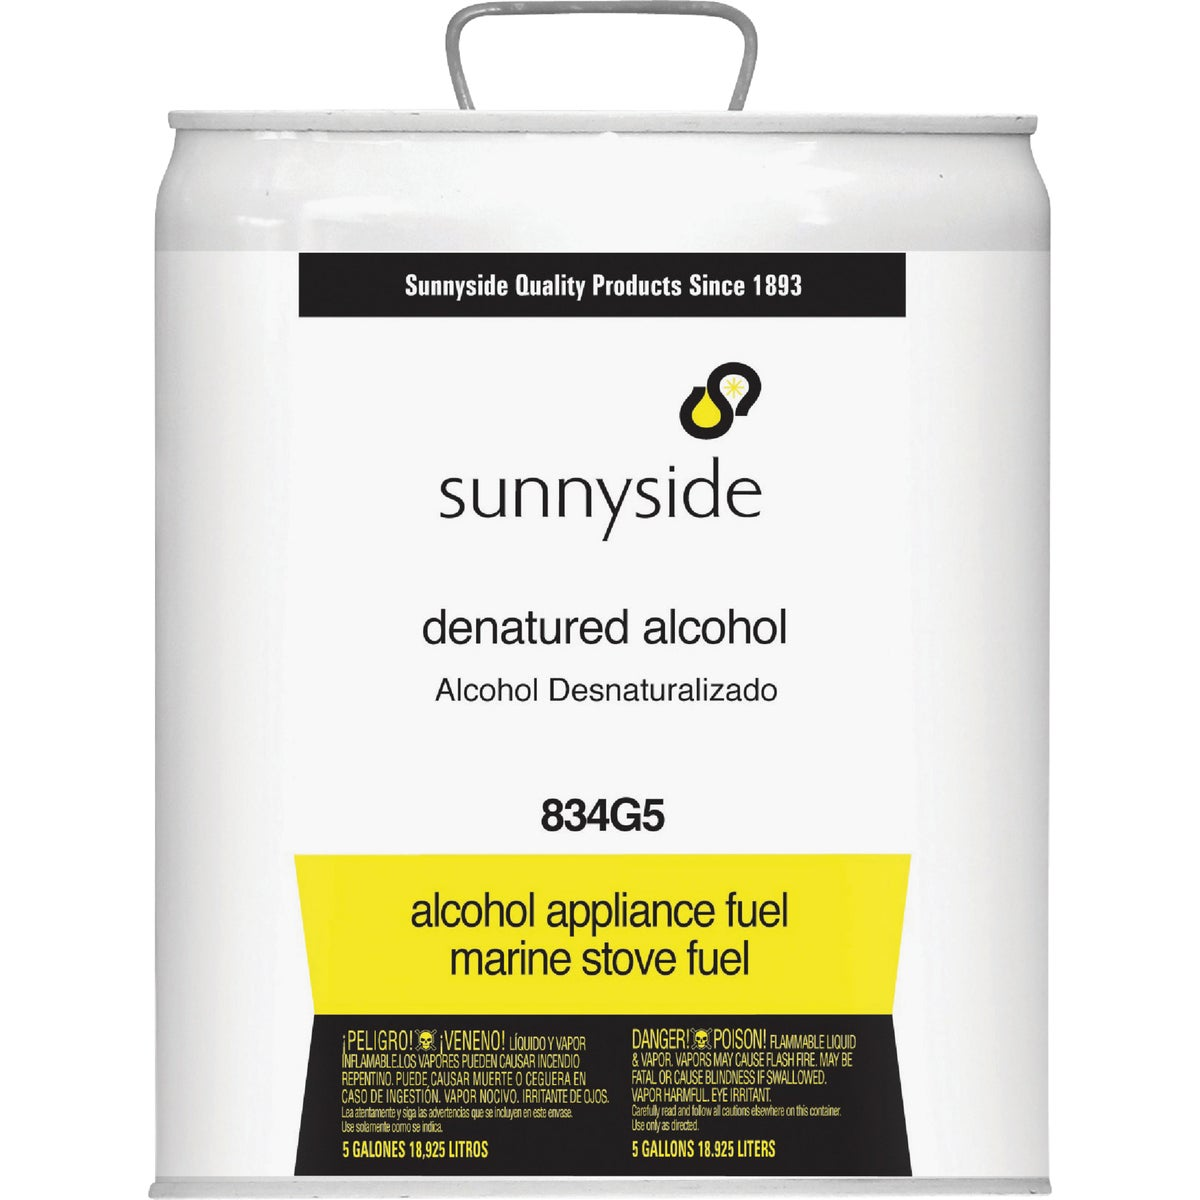 DENATURED ALCOHOL - 834G5 by Sunnyside Corp